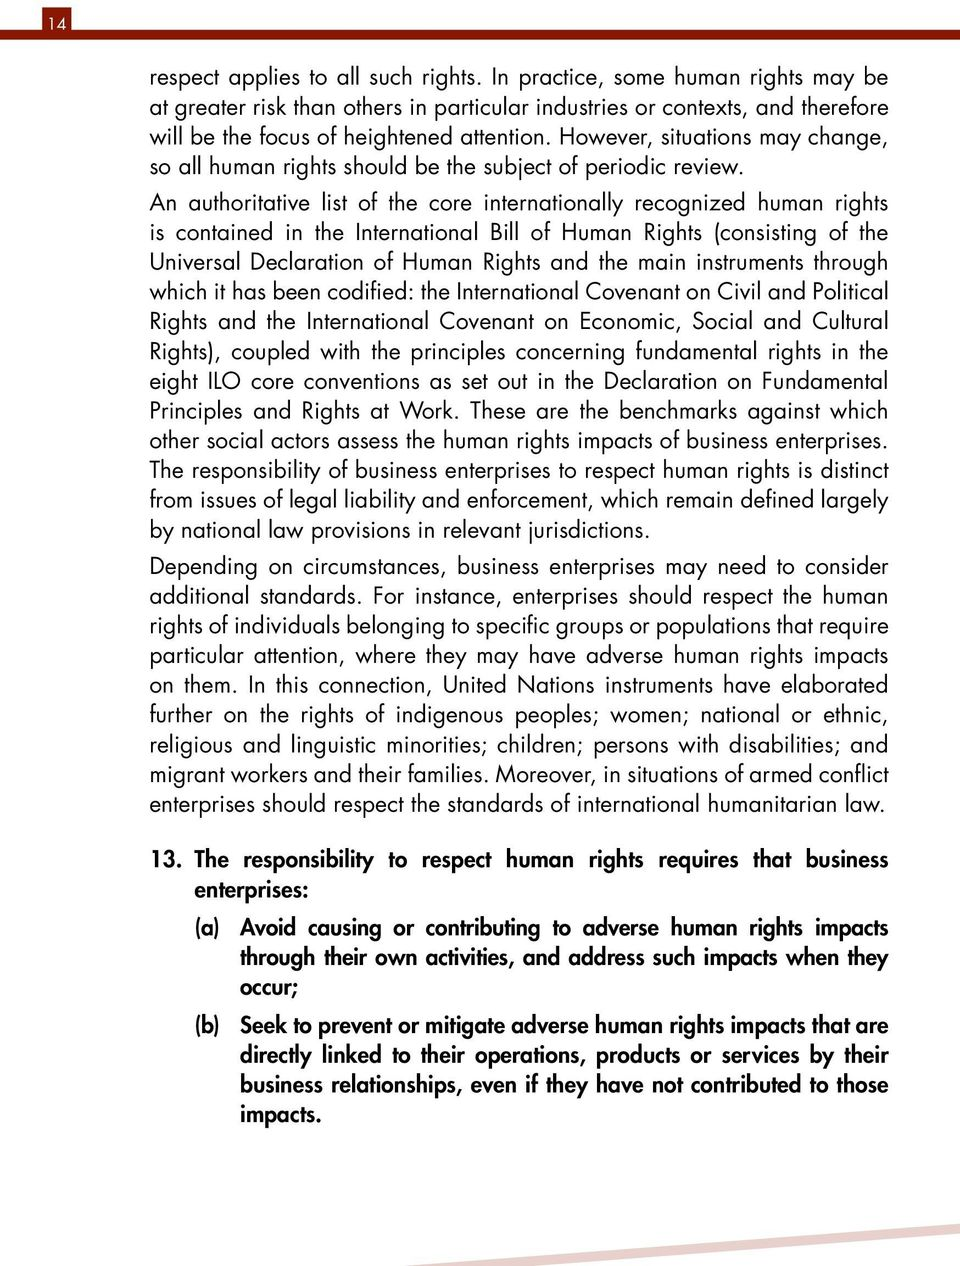 An authoritative list of the core internationally recognized human rights is contained in the International Bill of Human Rights (consisting of the Universal Declaration of Human Rights and the main